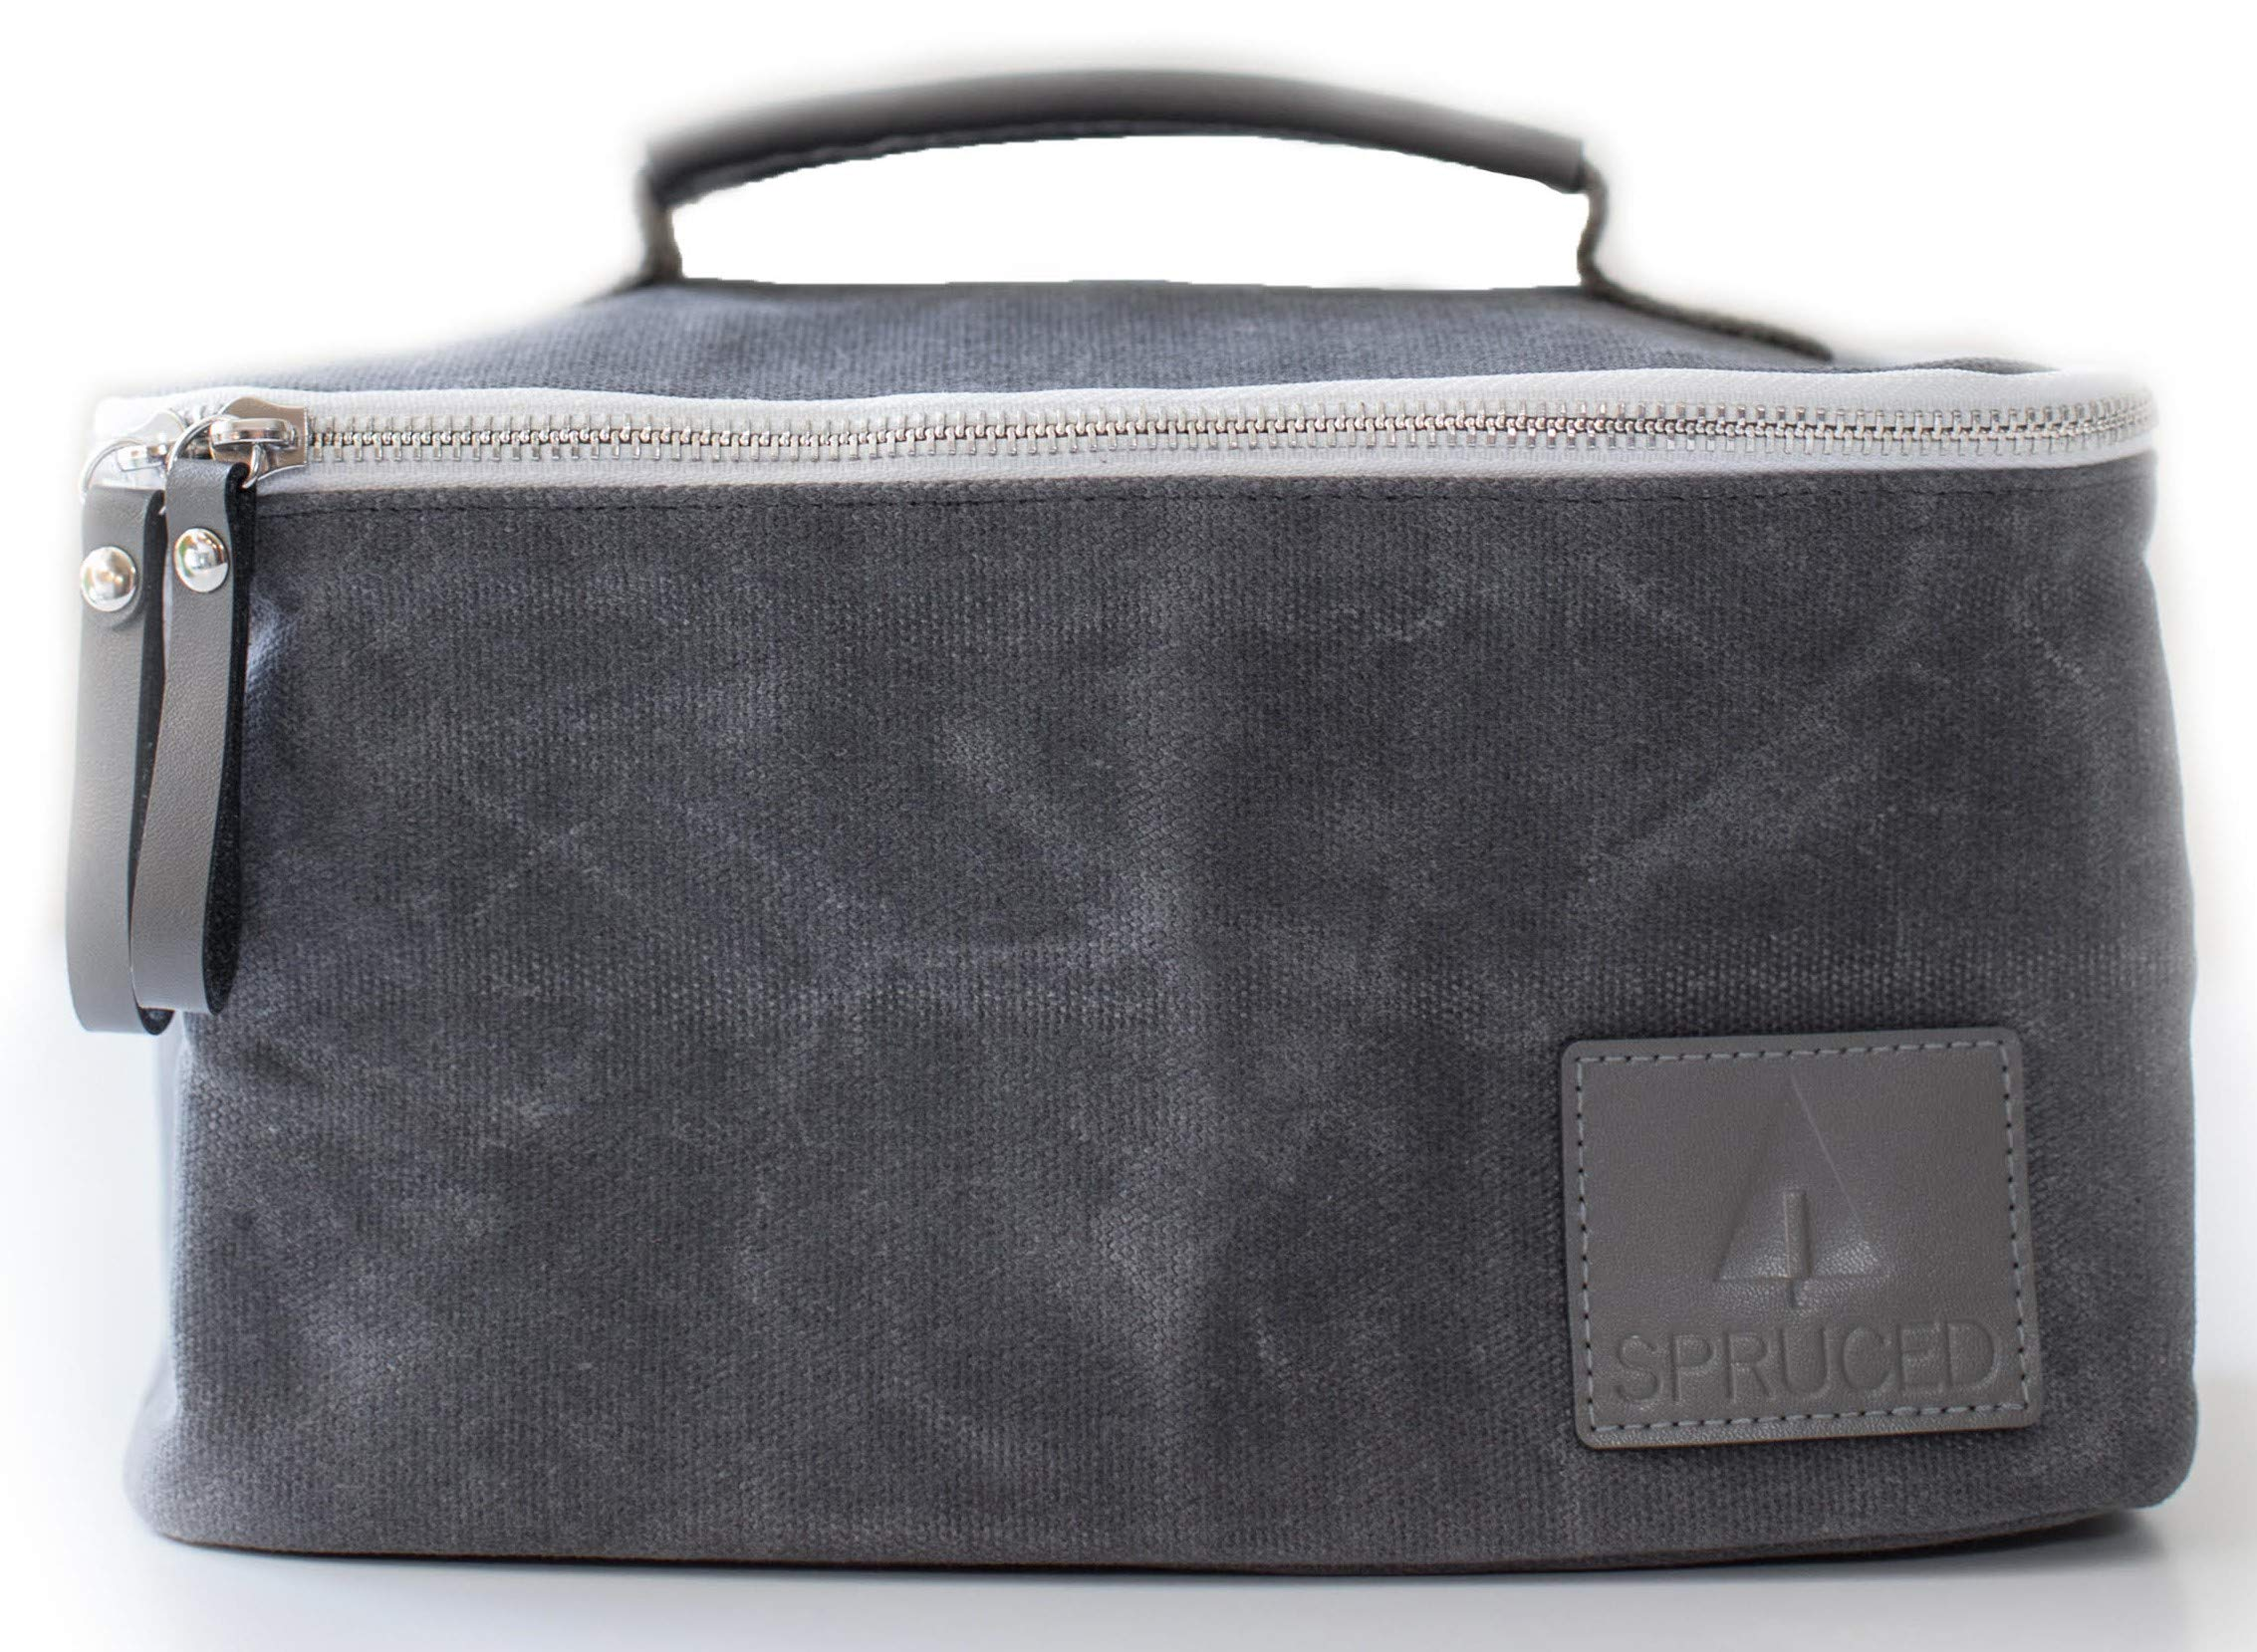 Lunch Box for Adults, Men, Women, Kids | Insulated Cooler Bag | Waxed Canvas and Genuine Leather | Reusable, Eco Friendly | Stylish, Classic Look (Slate Gray)